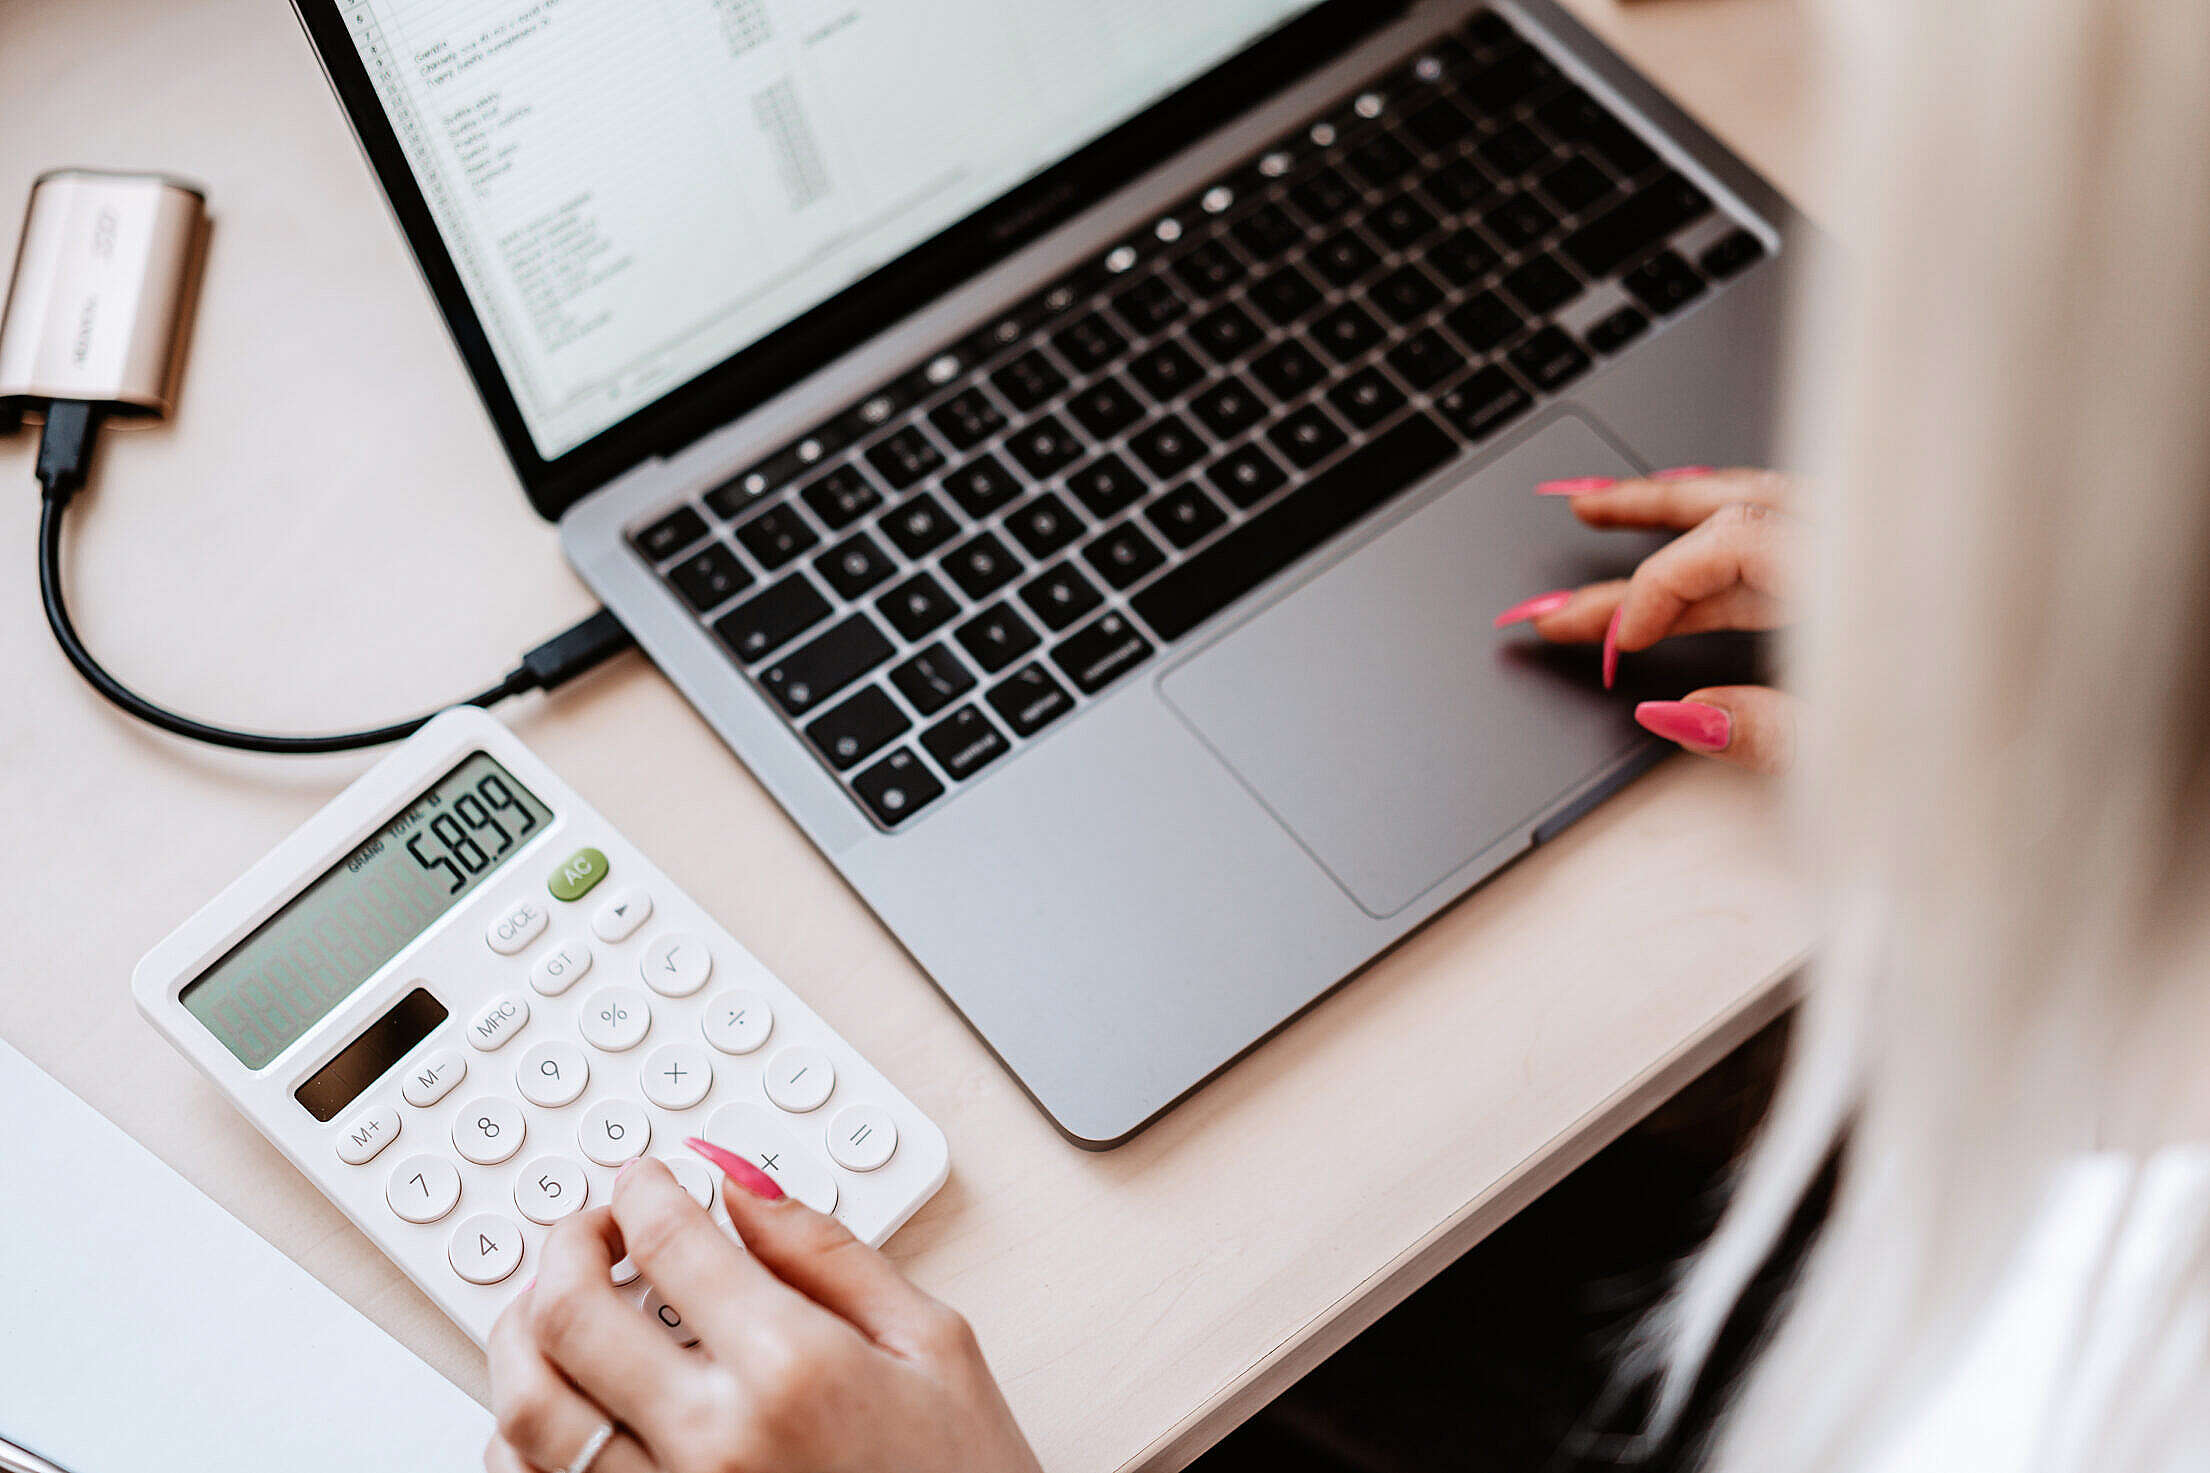 Woman Working on a Laptop and Calculator Free Stock Photo